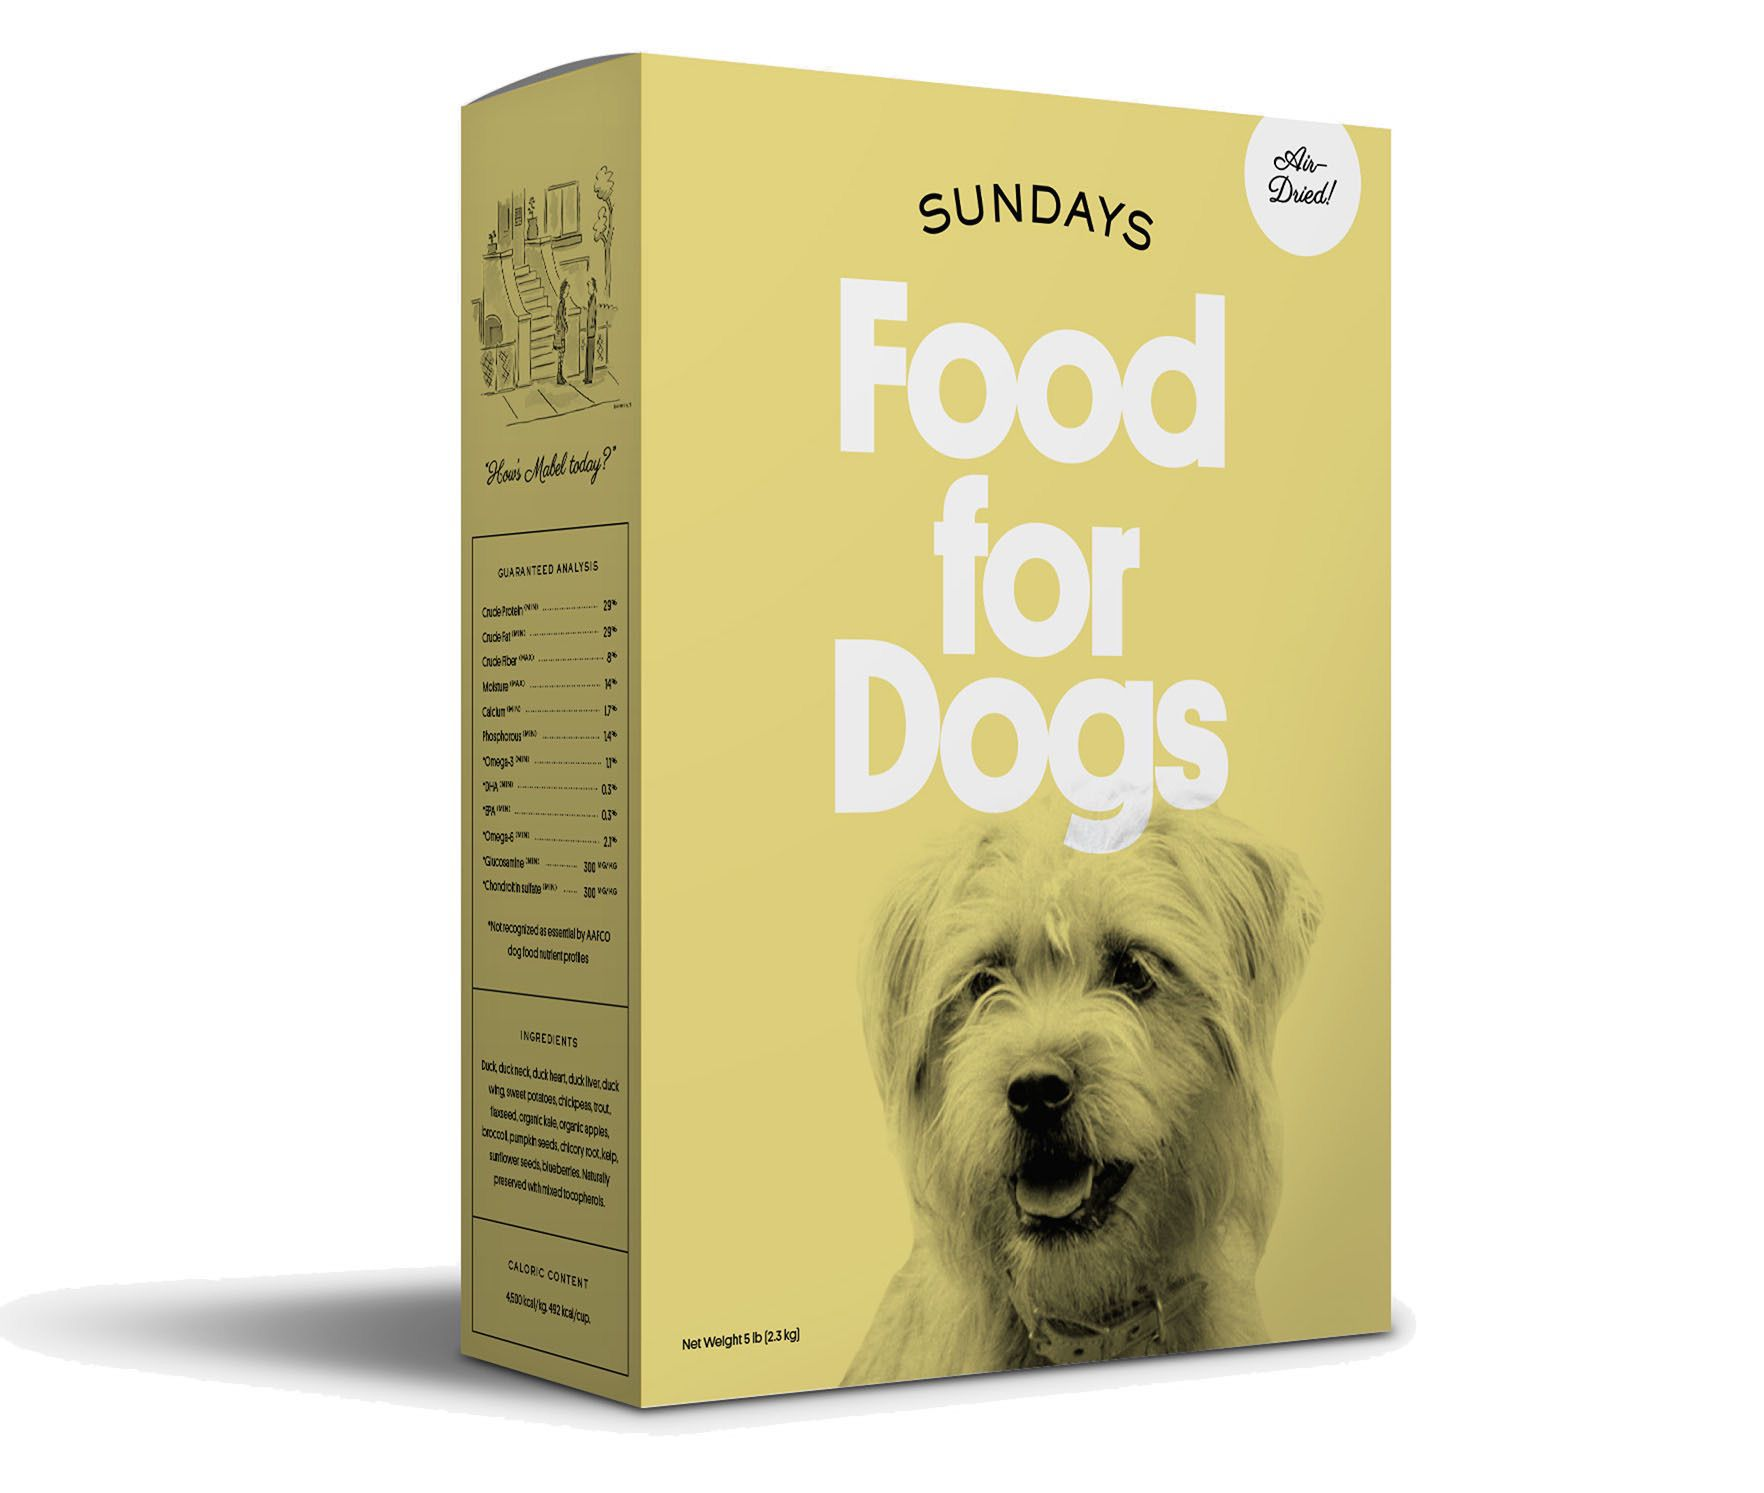 Sundays Food for Dogs